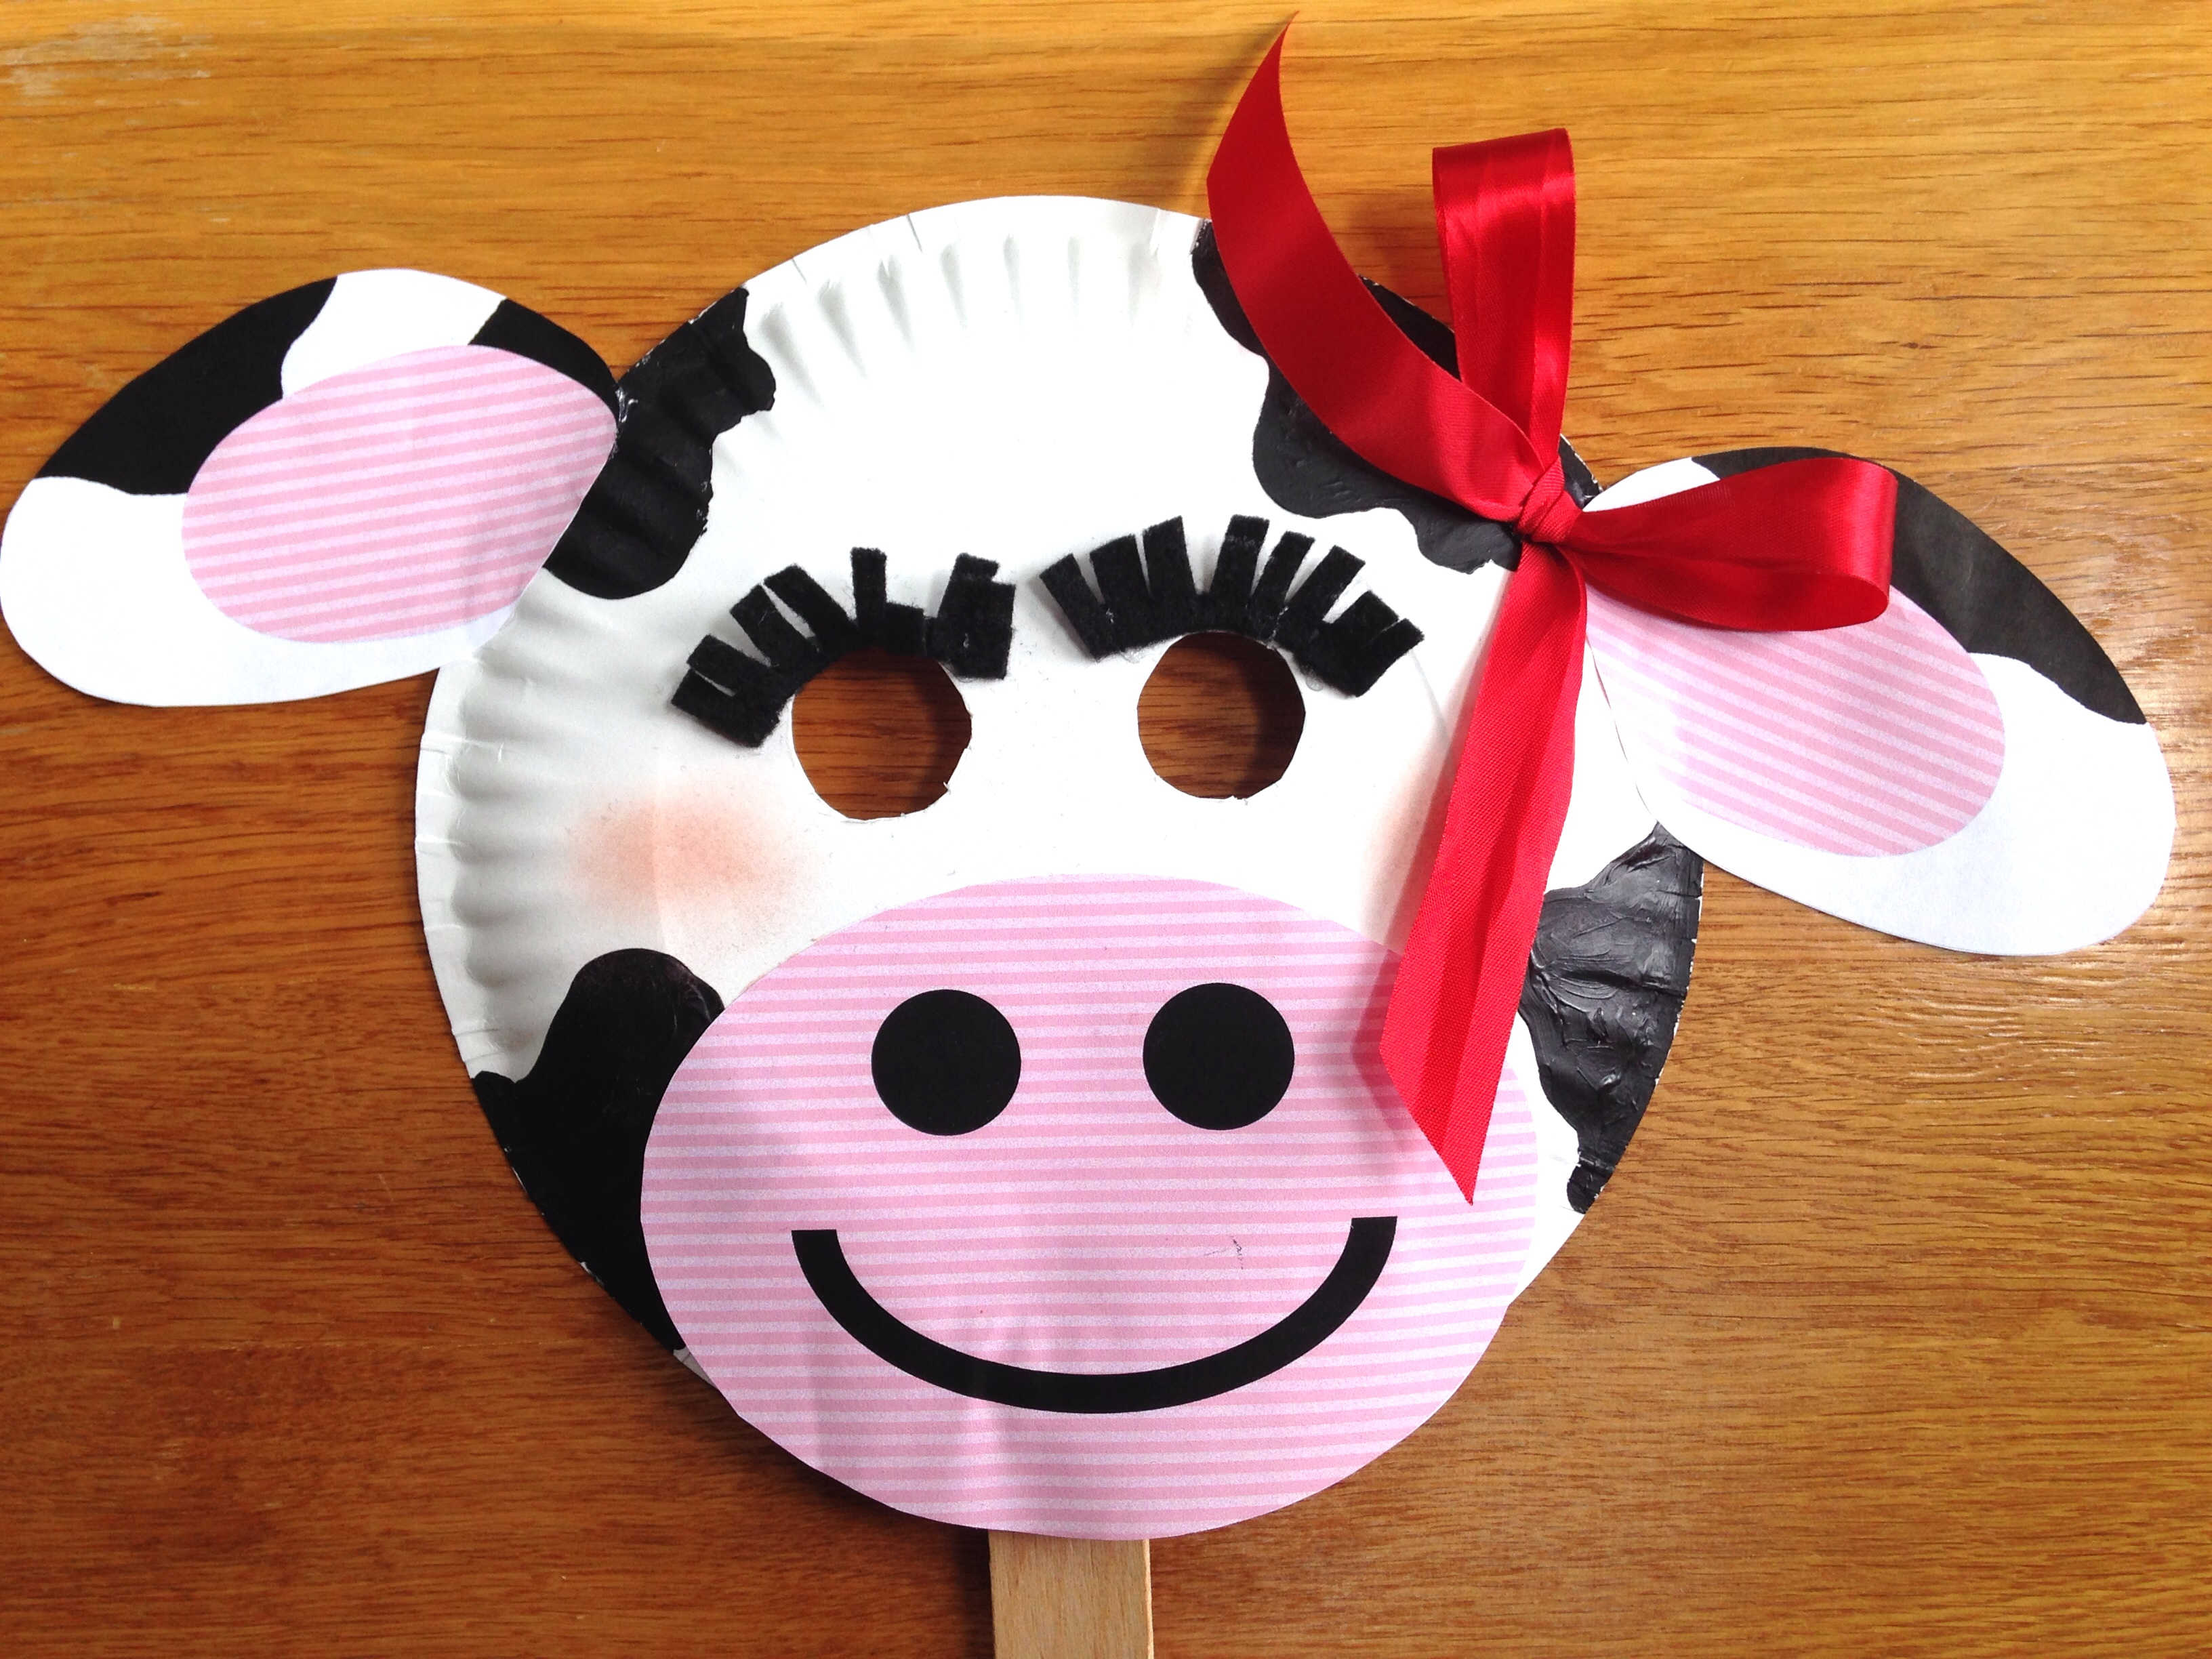 photograph relating to Printable Cow Mask known as Chick-fil-A Cow Working day Paper Plate Cow Masks With No cost